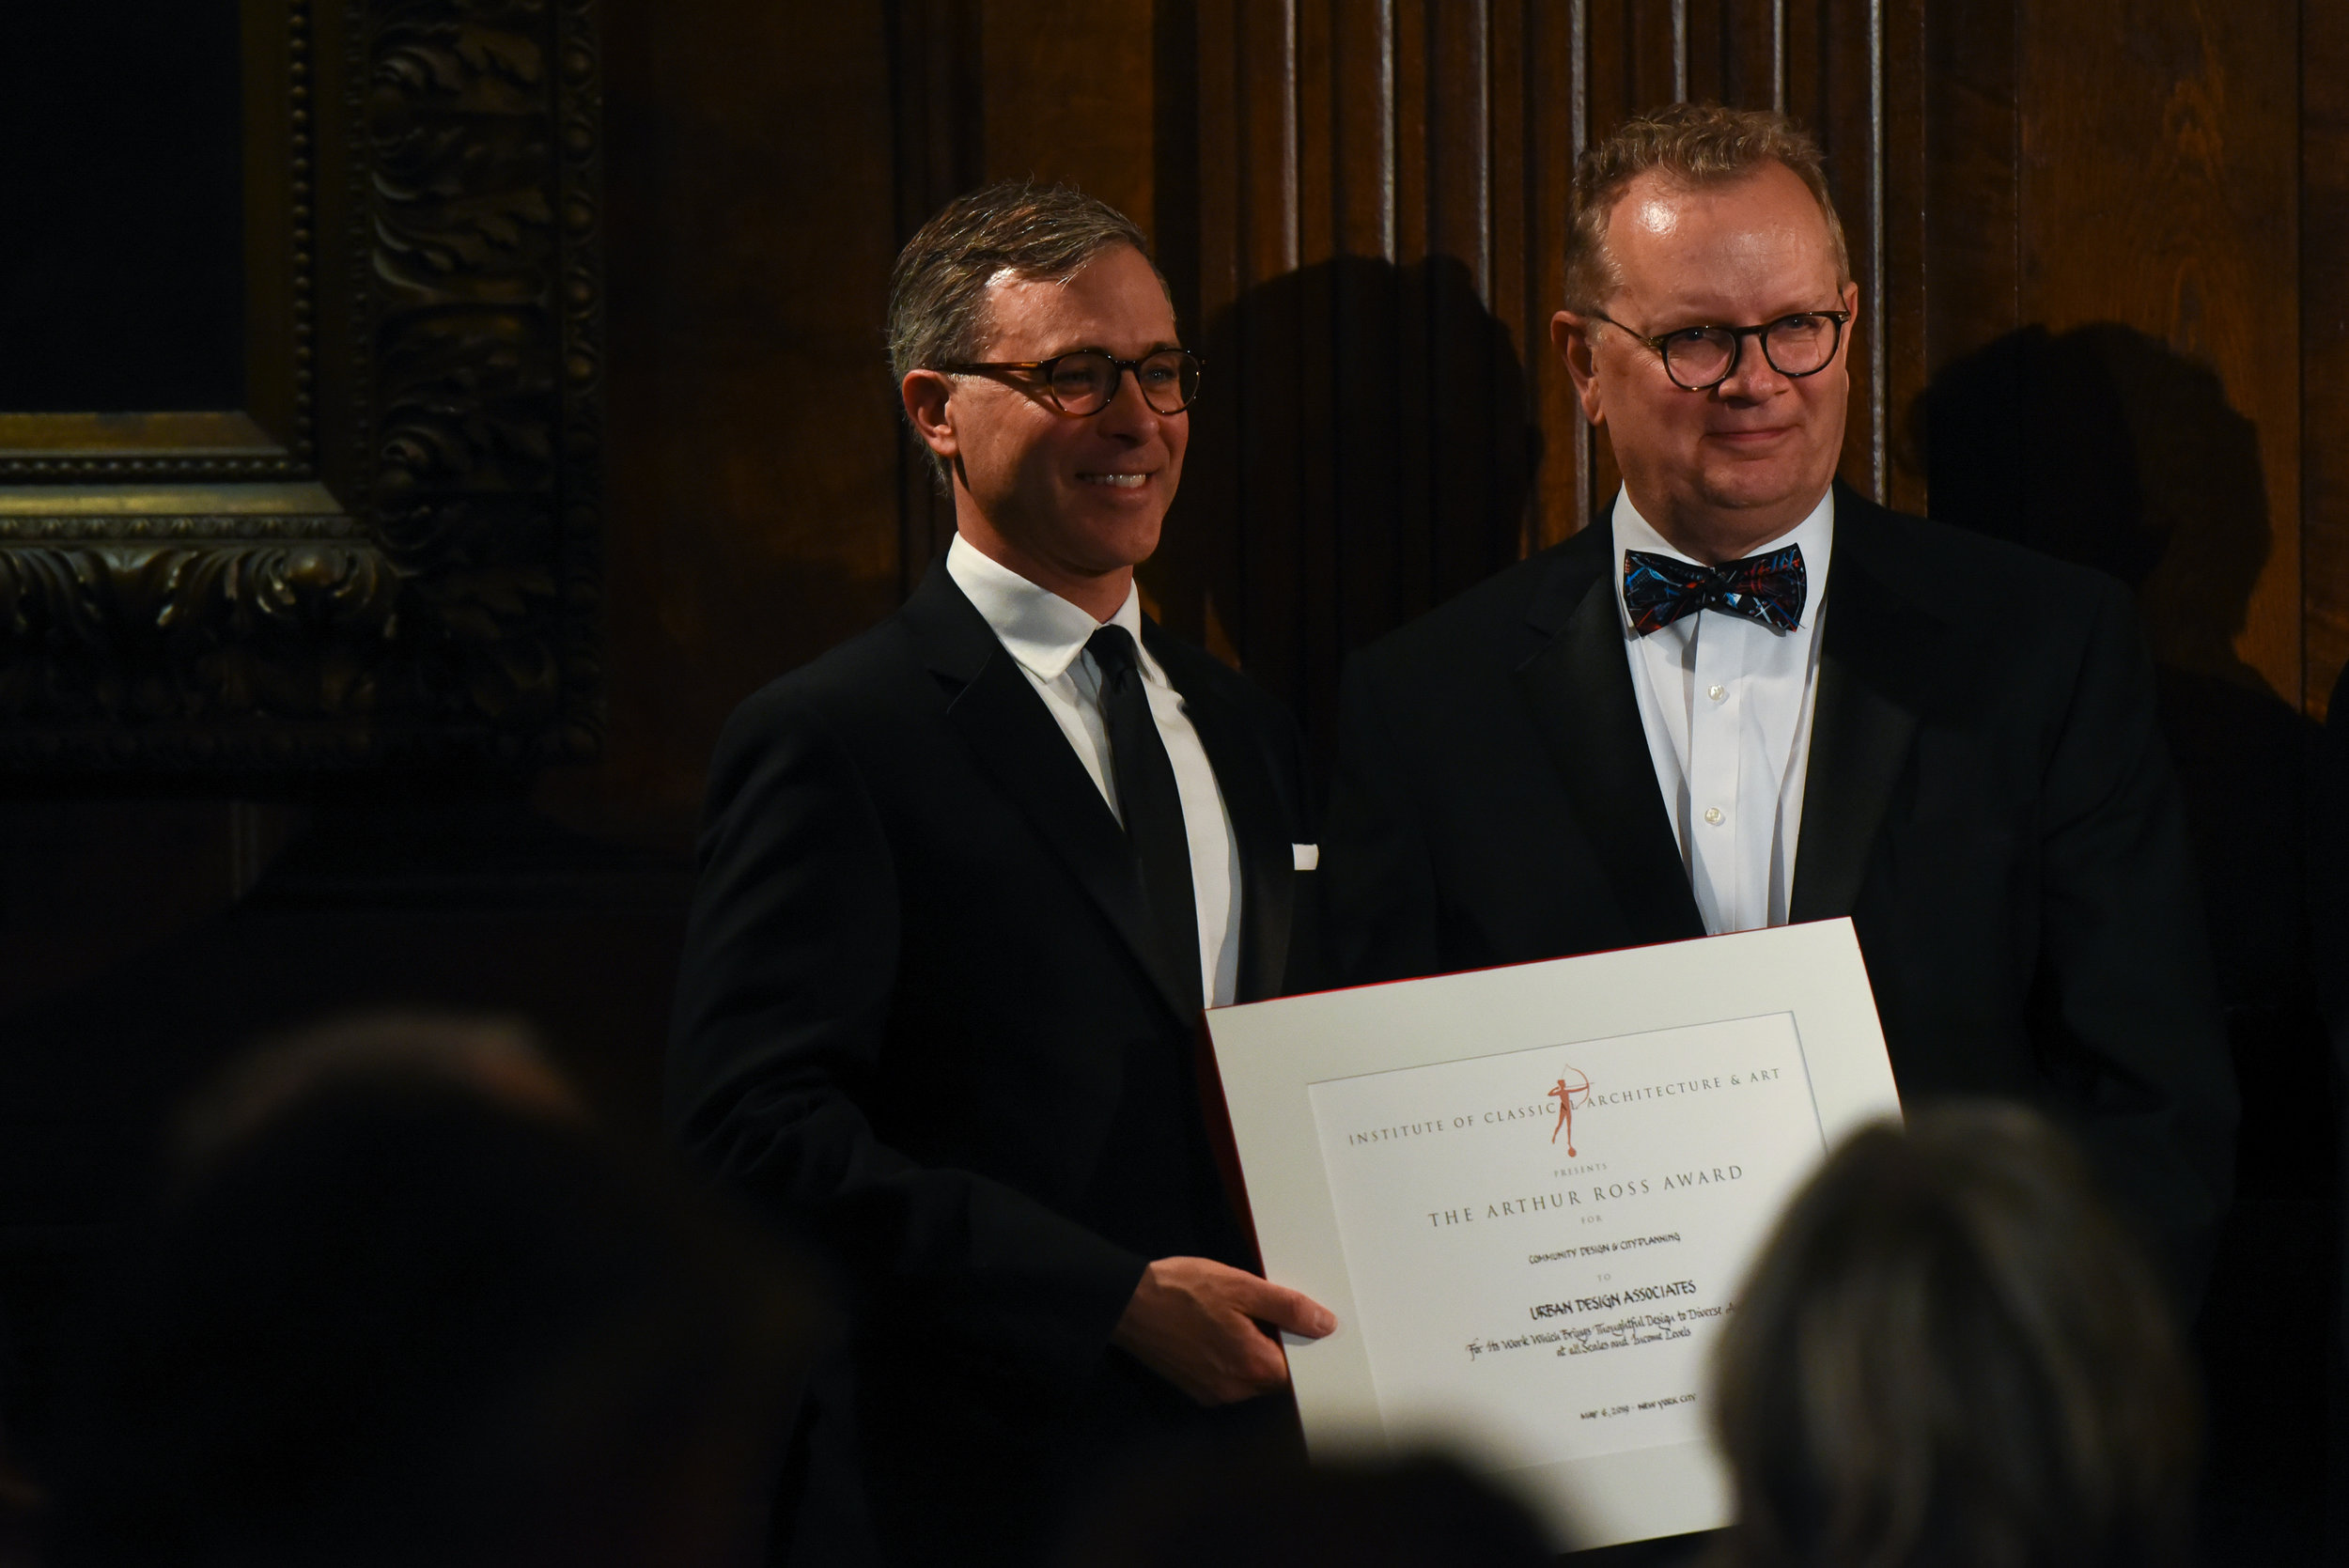 Paul Ostergaard (right) and fellow partner Eric Osth (left) accepted the 2019 Arthur Ross Award for Community Design, Civic Design, and City Planning on behalf of UDA. Photo by Jared Siskin/PMC